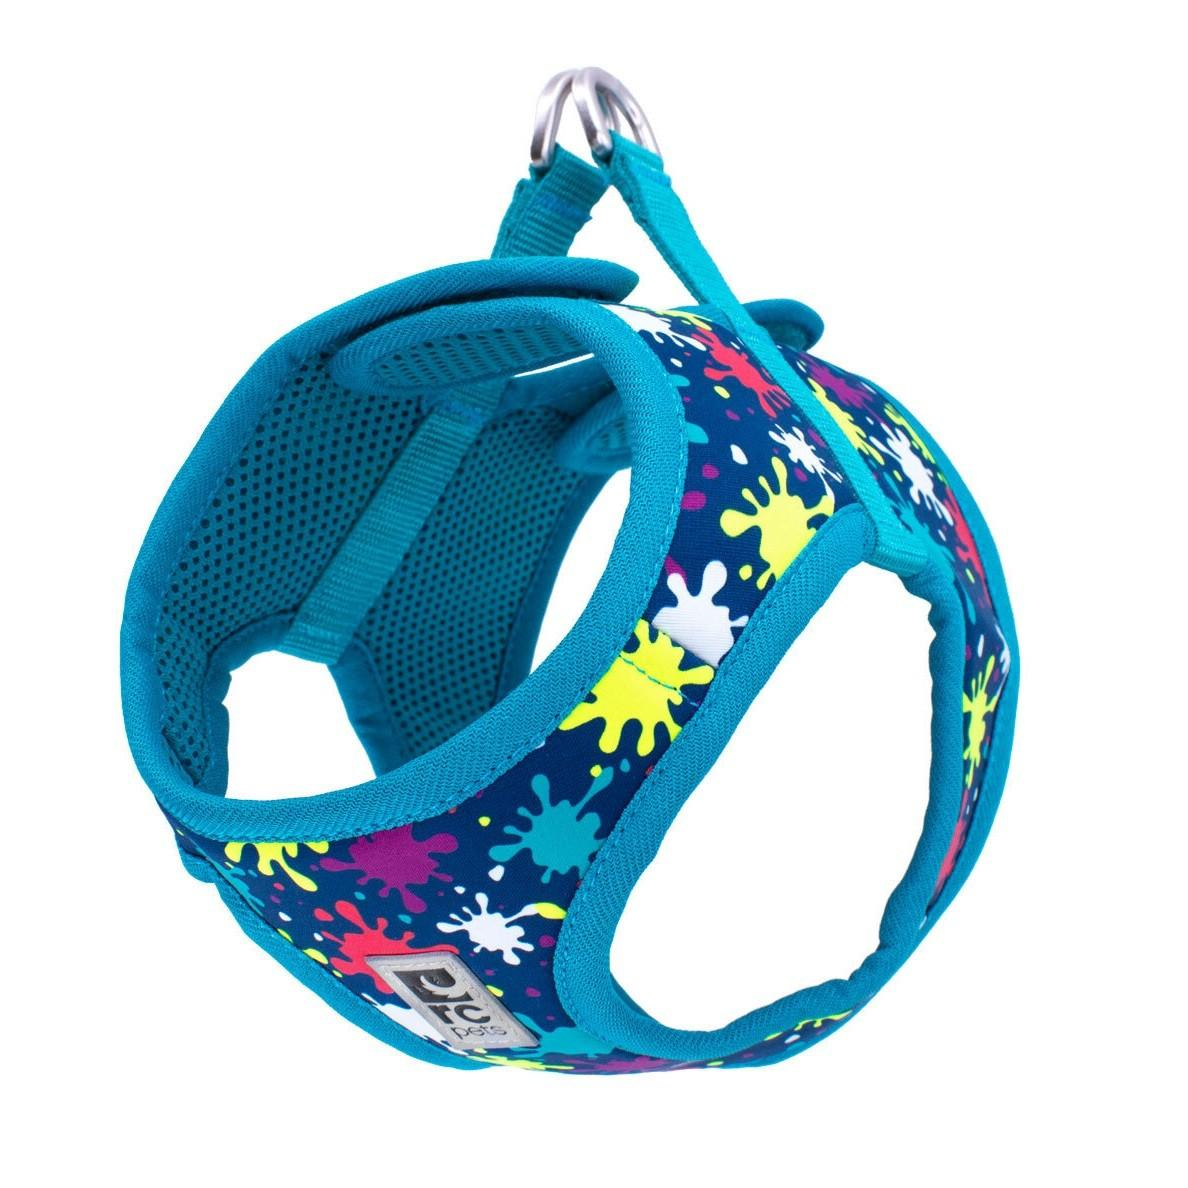 RC Pet Products Step in Cirque Dog Harness, Splatter, Medium